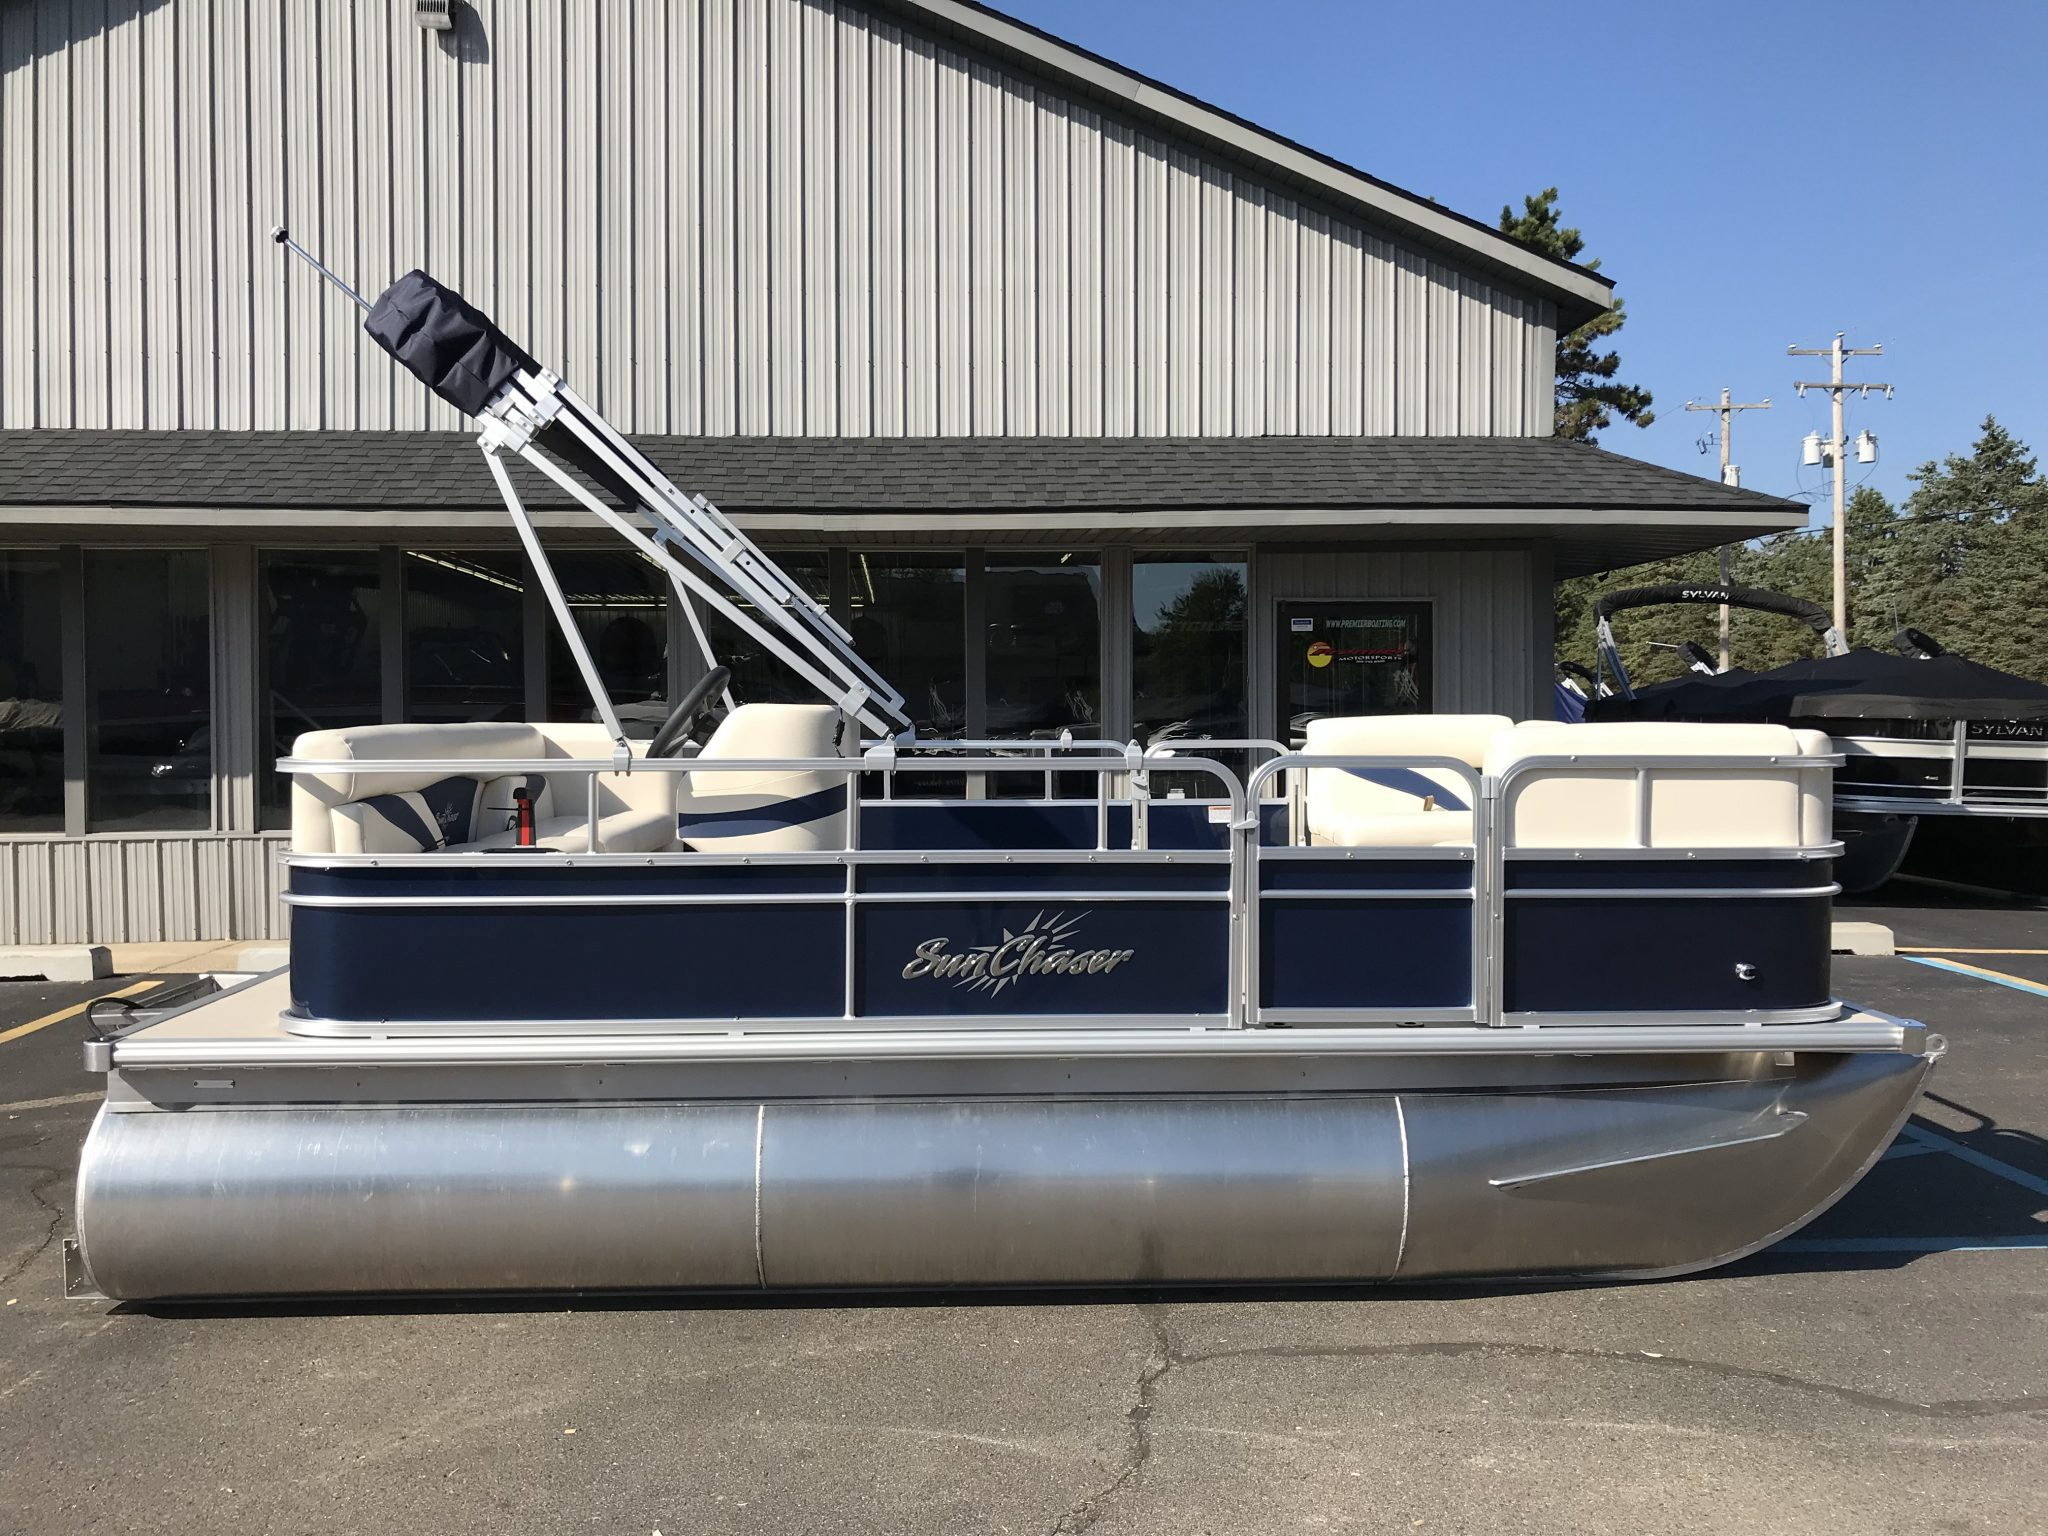 2019 SunChaser 816 Cruise Blue 4